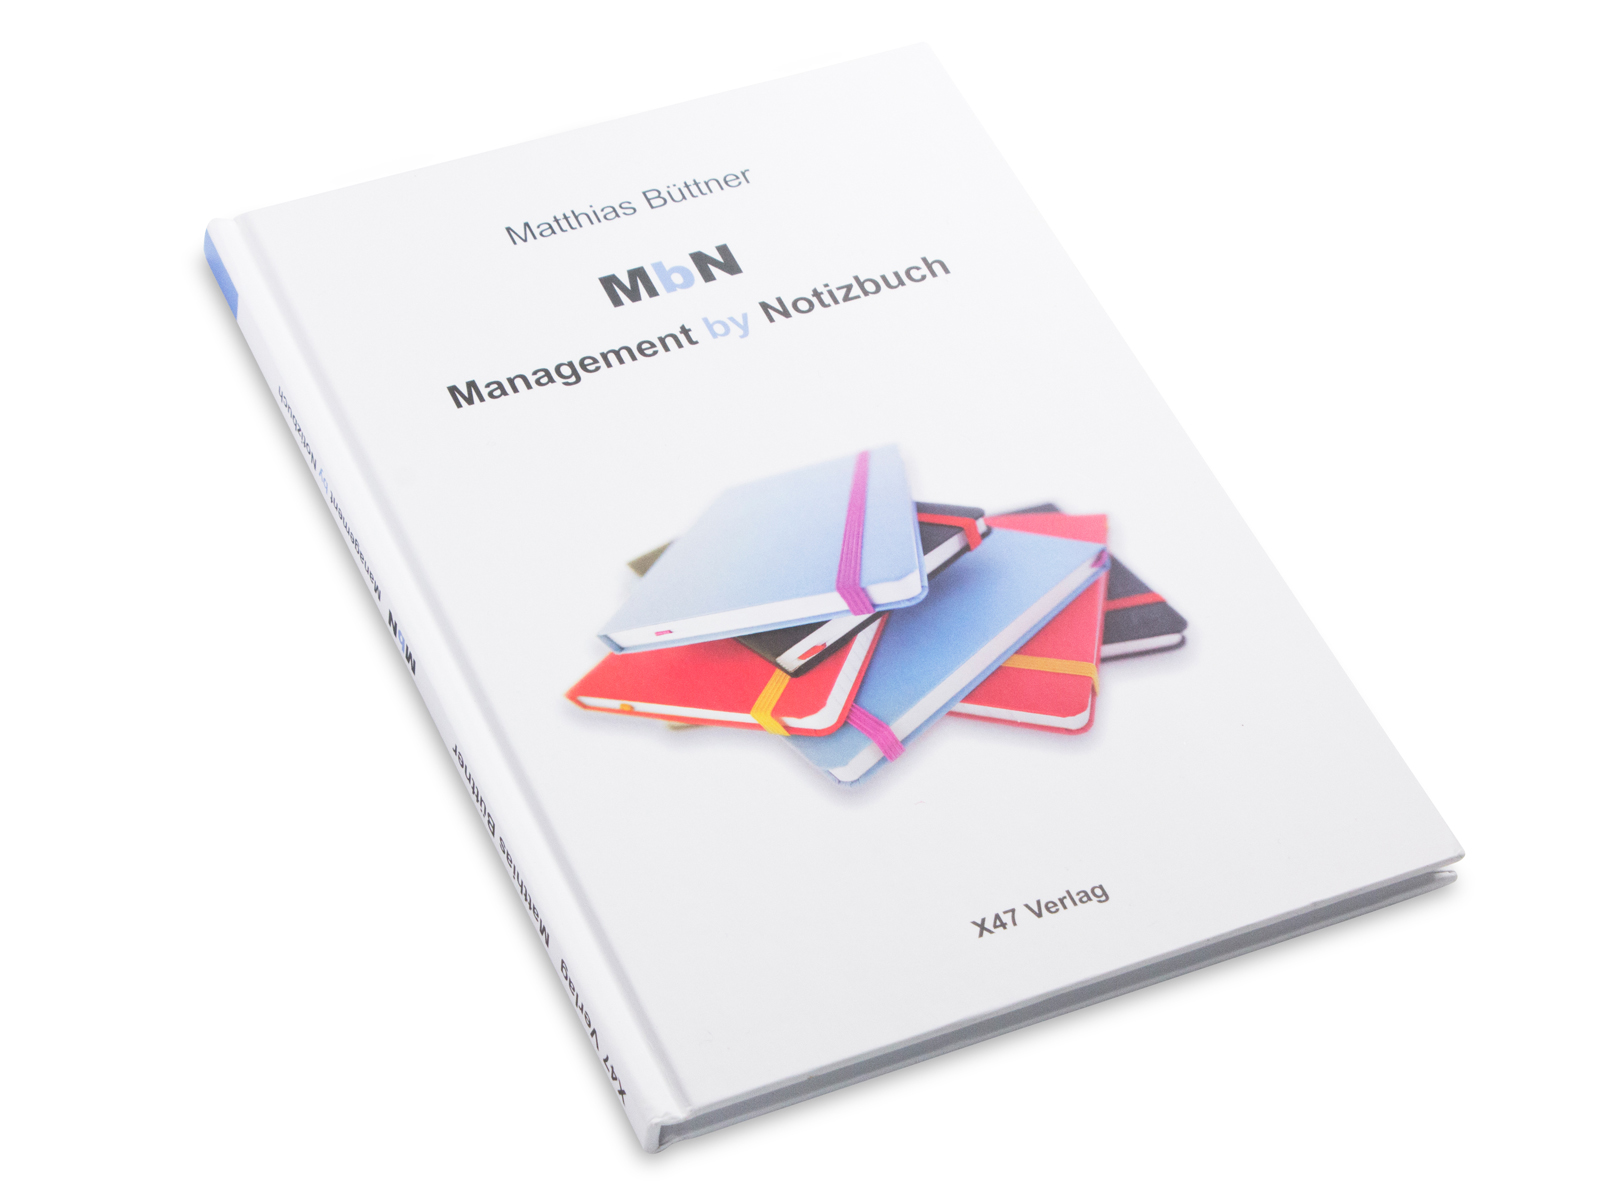 Management by Notizbuch, Hardcover